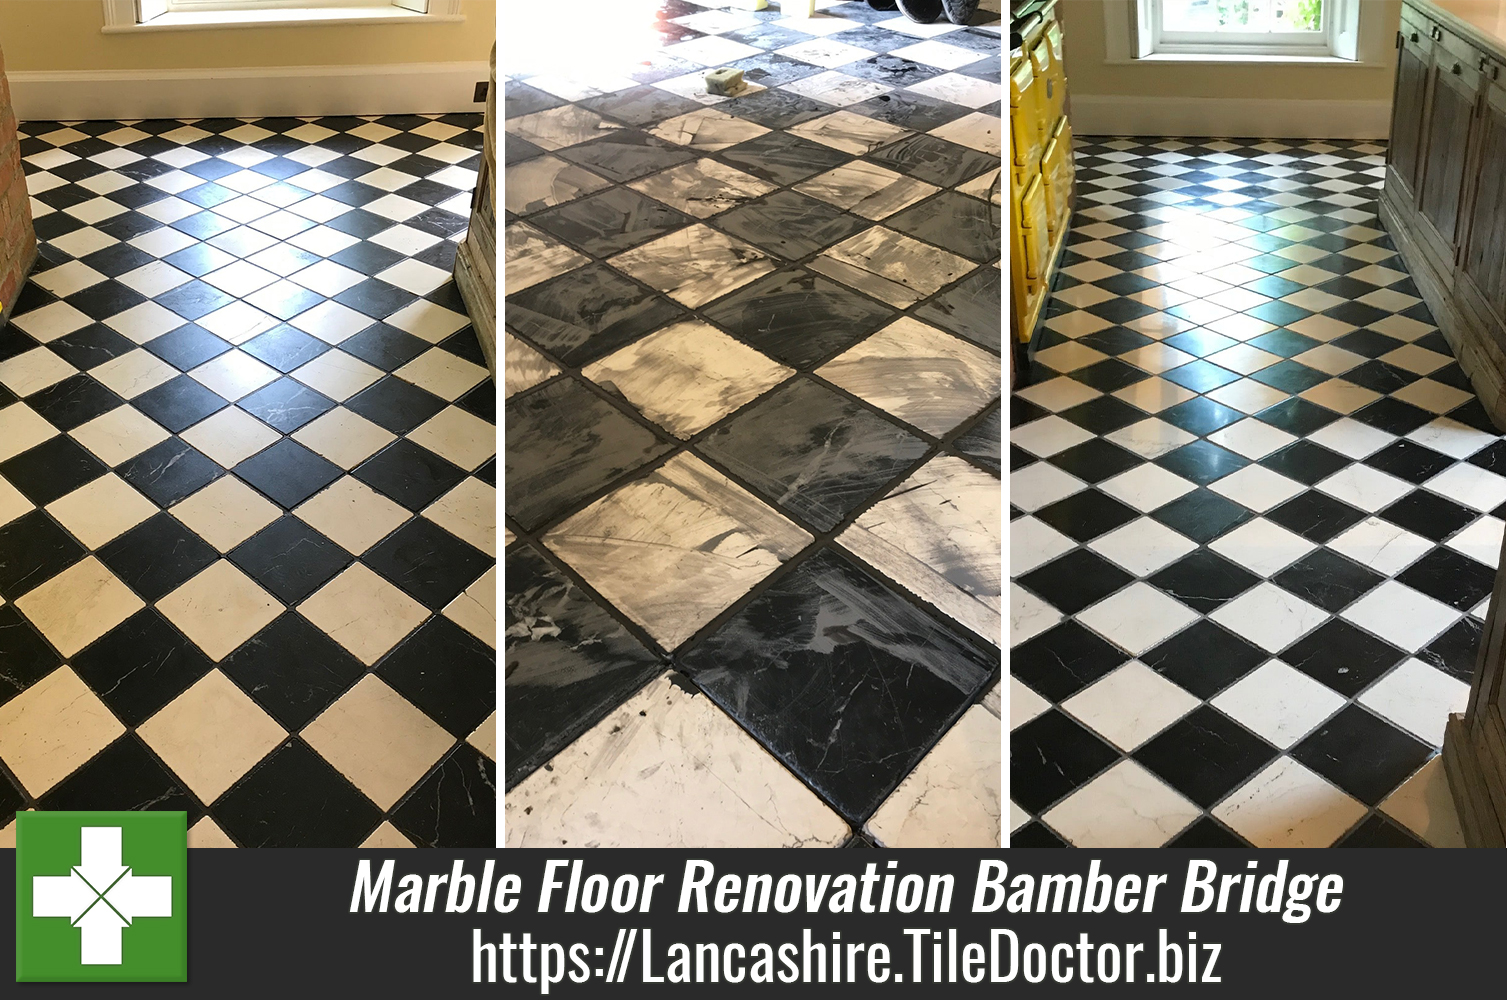 Marble-Tiled-Floor-Before-After-Renovation-Bamber-Bridge